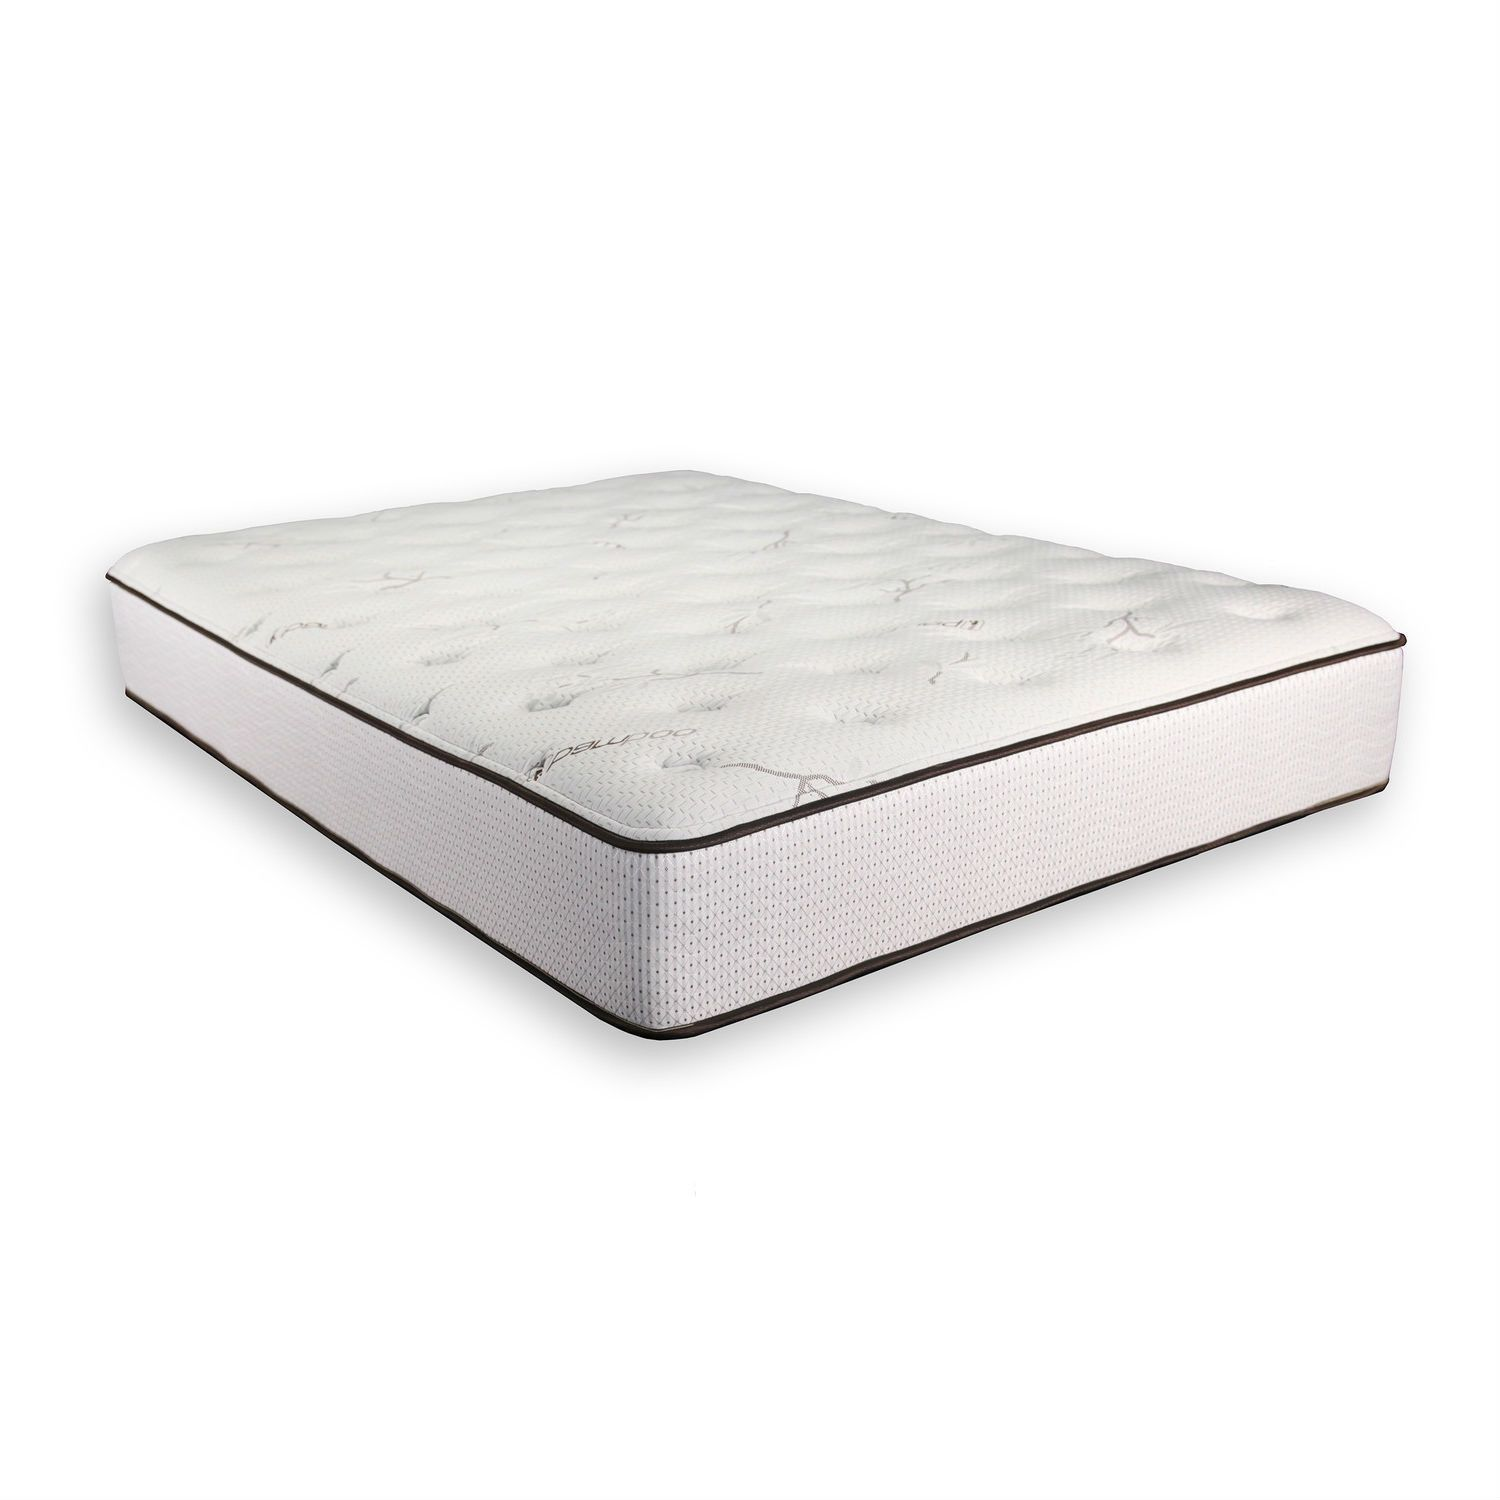 Queen size 10-inch Thick Talalay Latex Foam Mattress - Made in USA ...